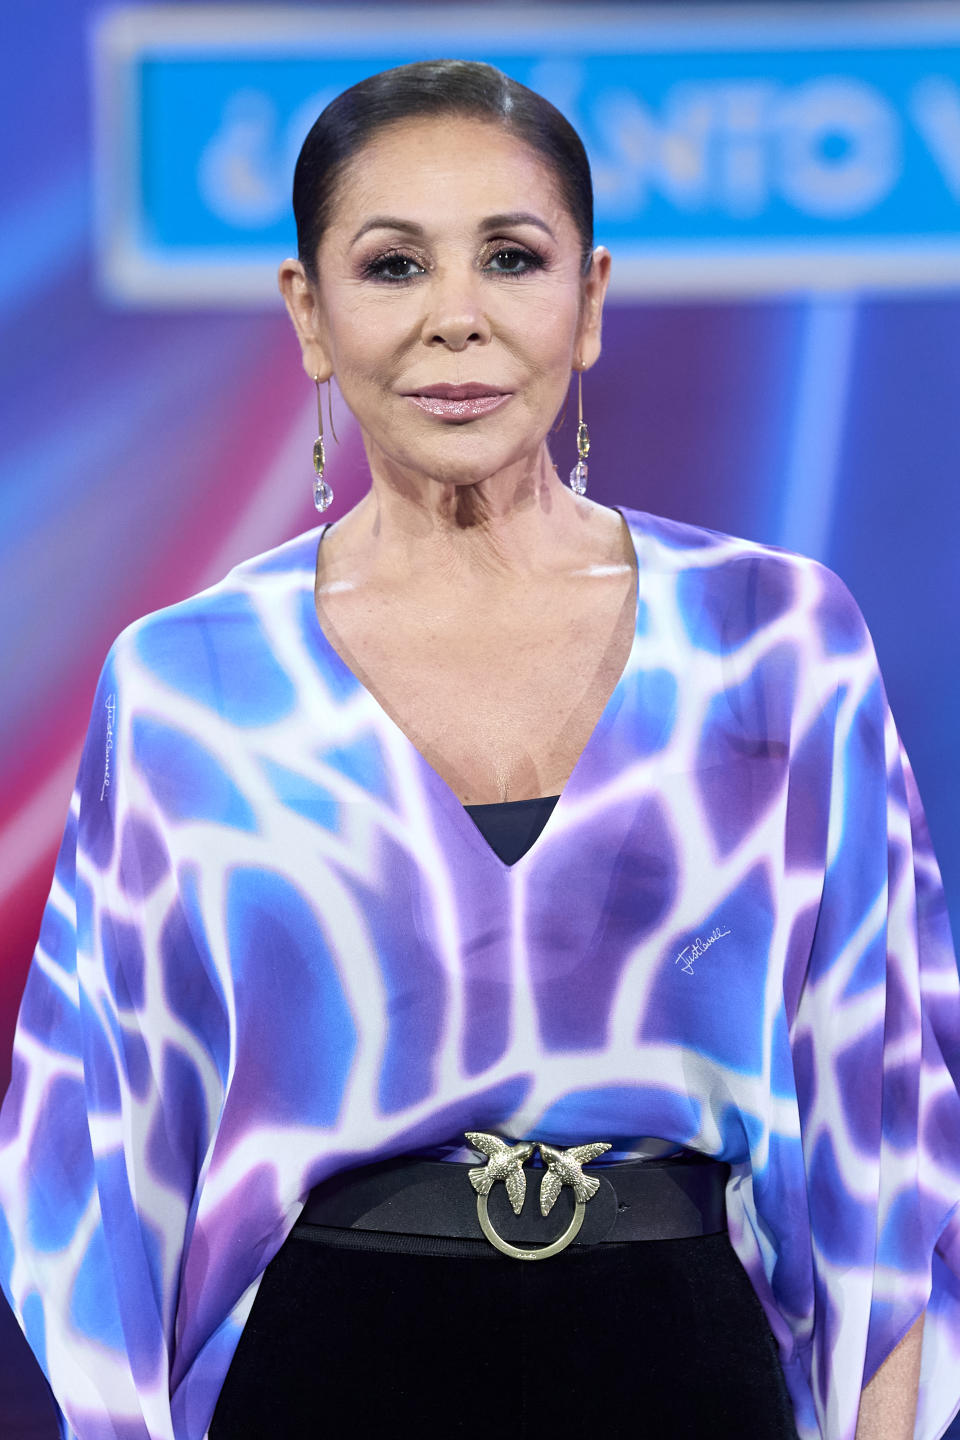 MADRID, SPAIN - APRIL 29: Isabel Pantoja attends 'Top Star ¿Cuanto Vale Tu Voz?' photocall at Mediaset Studios on April 29, 2021 in Madrid, Spain. (Photo by Carlos Alvarez/Getty Images)